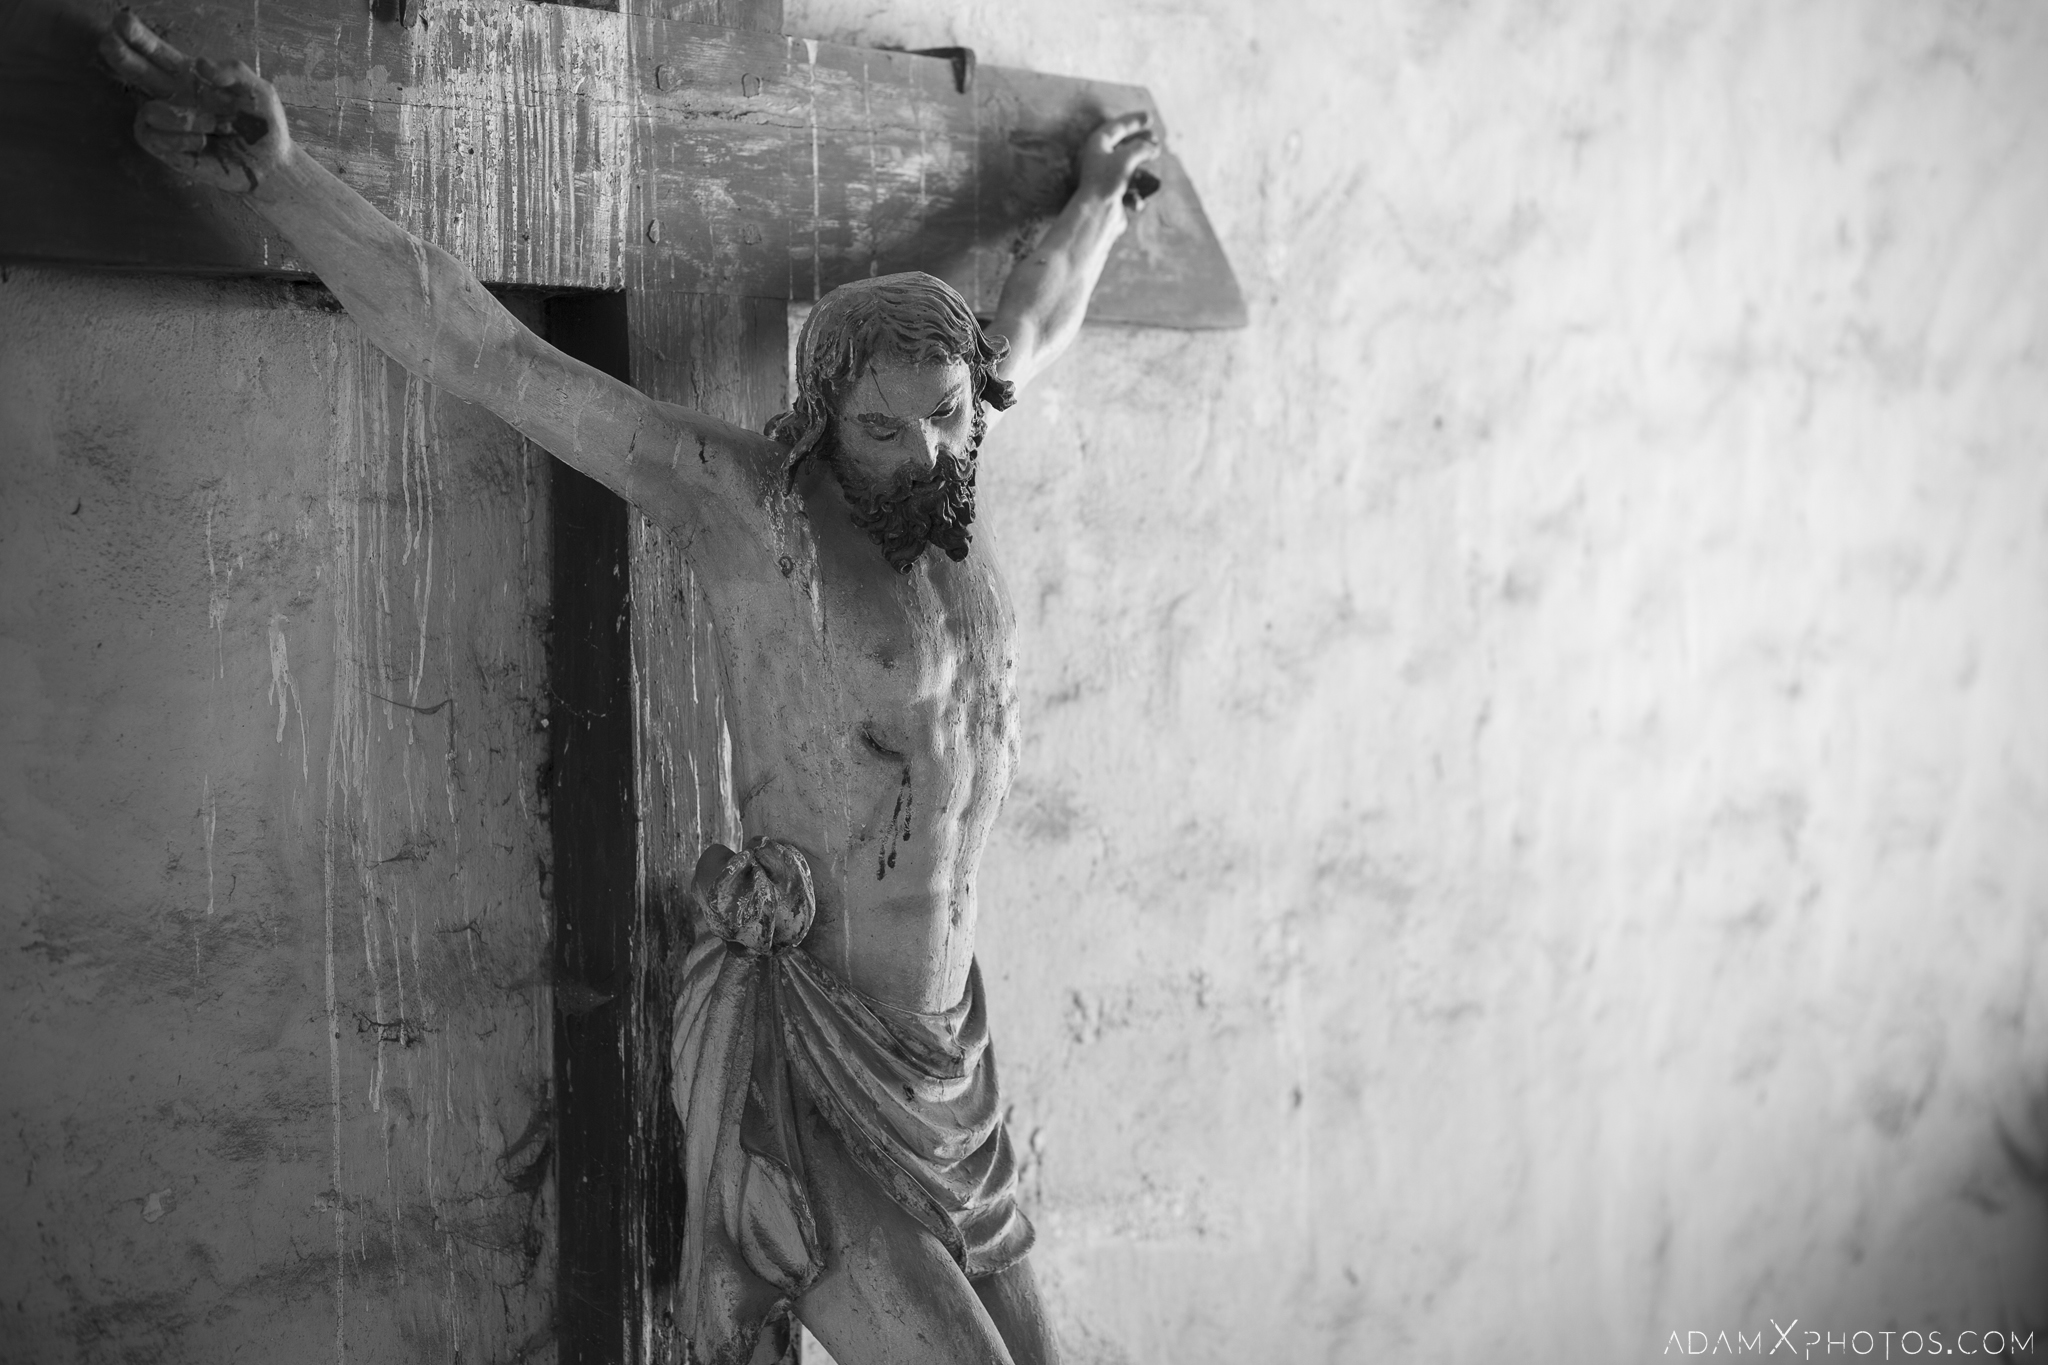 Jesus christ crucifix cross black and white b&w decay pigeon Chapel B Church Urbex Poland Adam X Urban Exploration Permission Visit Access 2016 Abandoned decay lost forgotten derelict location haunting eerie